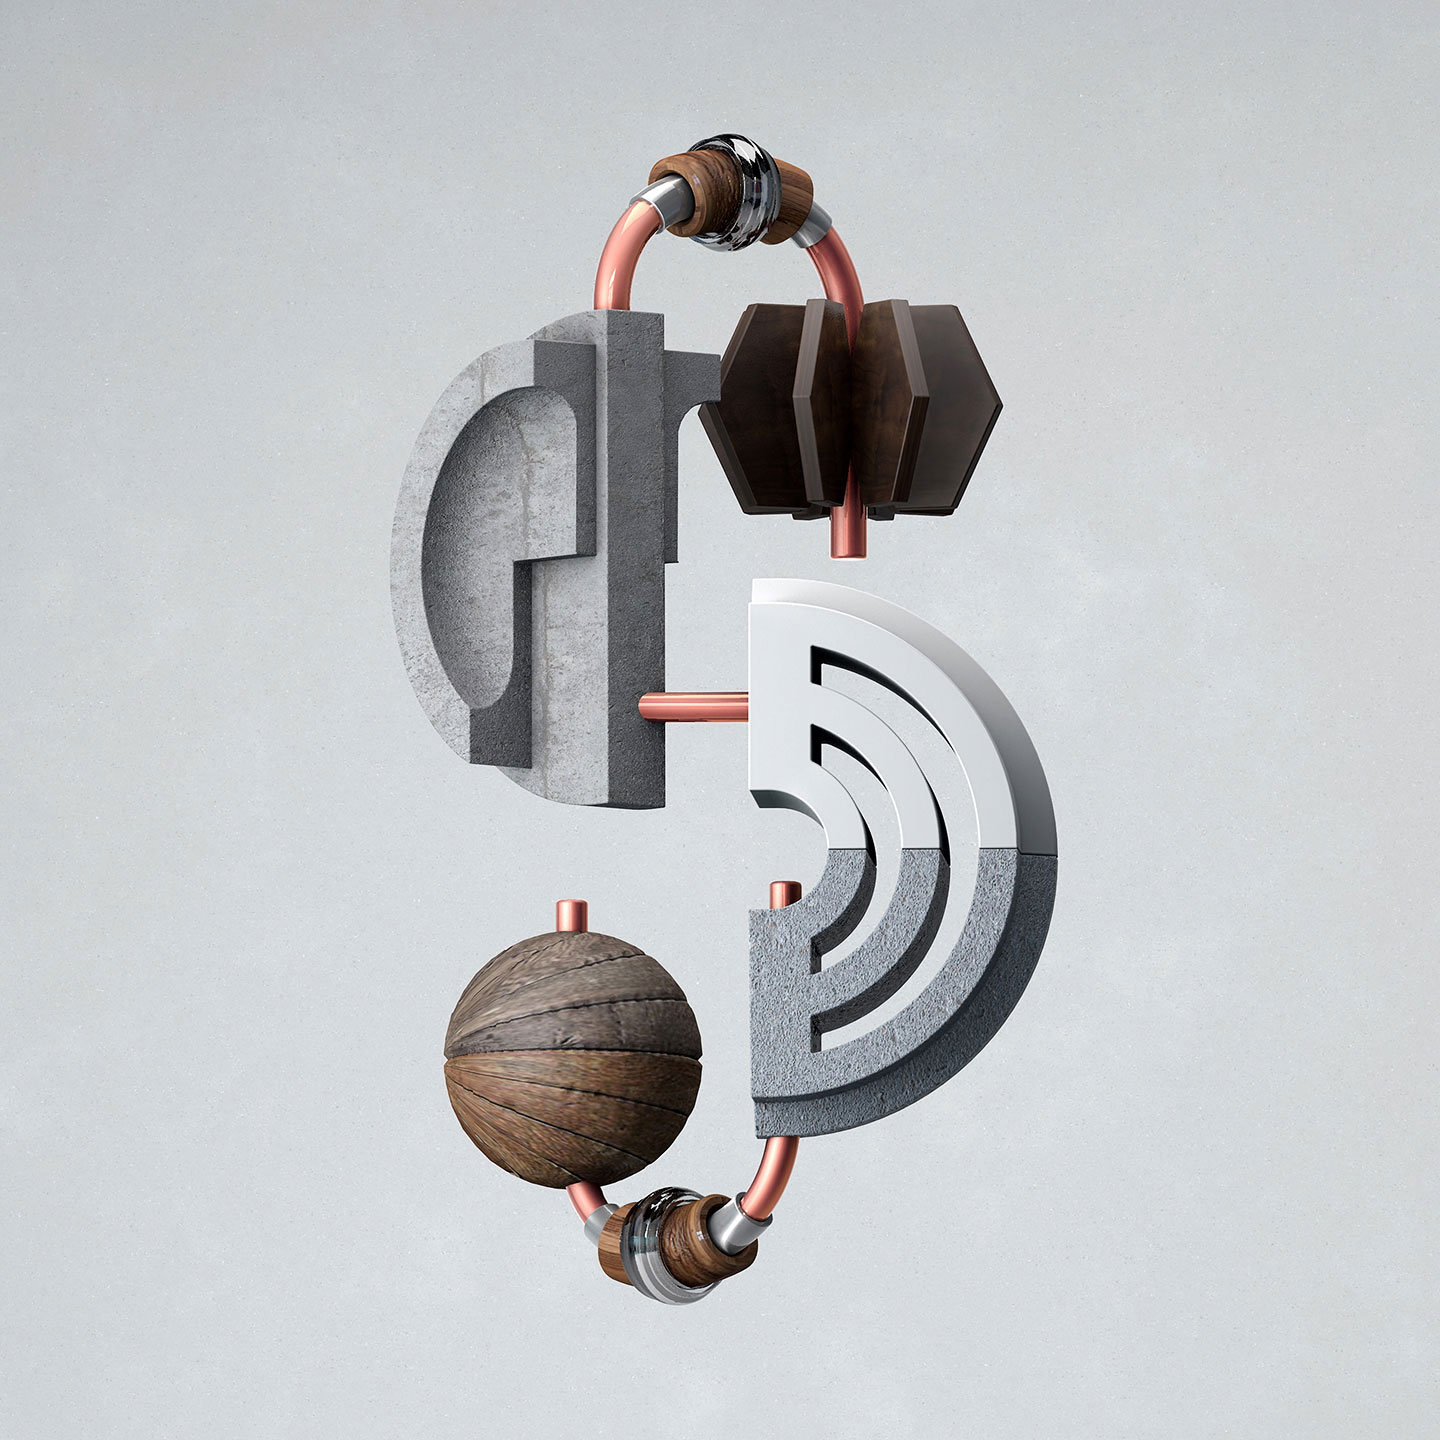 36 Days of Type 2016 - 3D typography letter S visual.